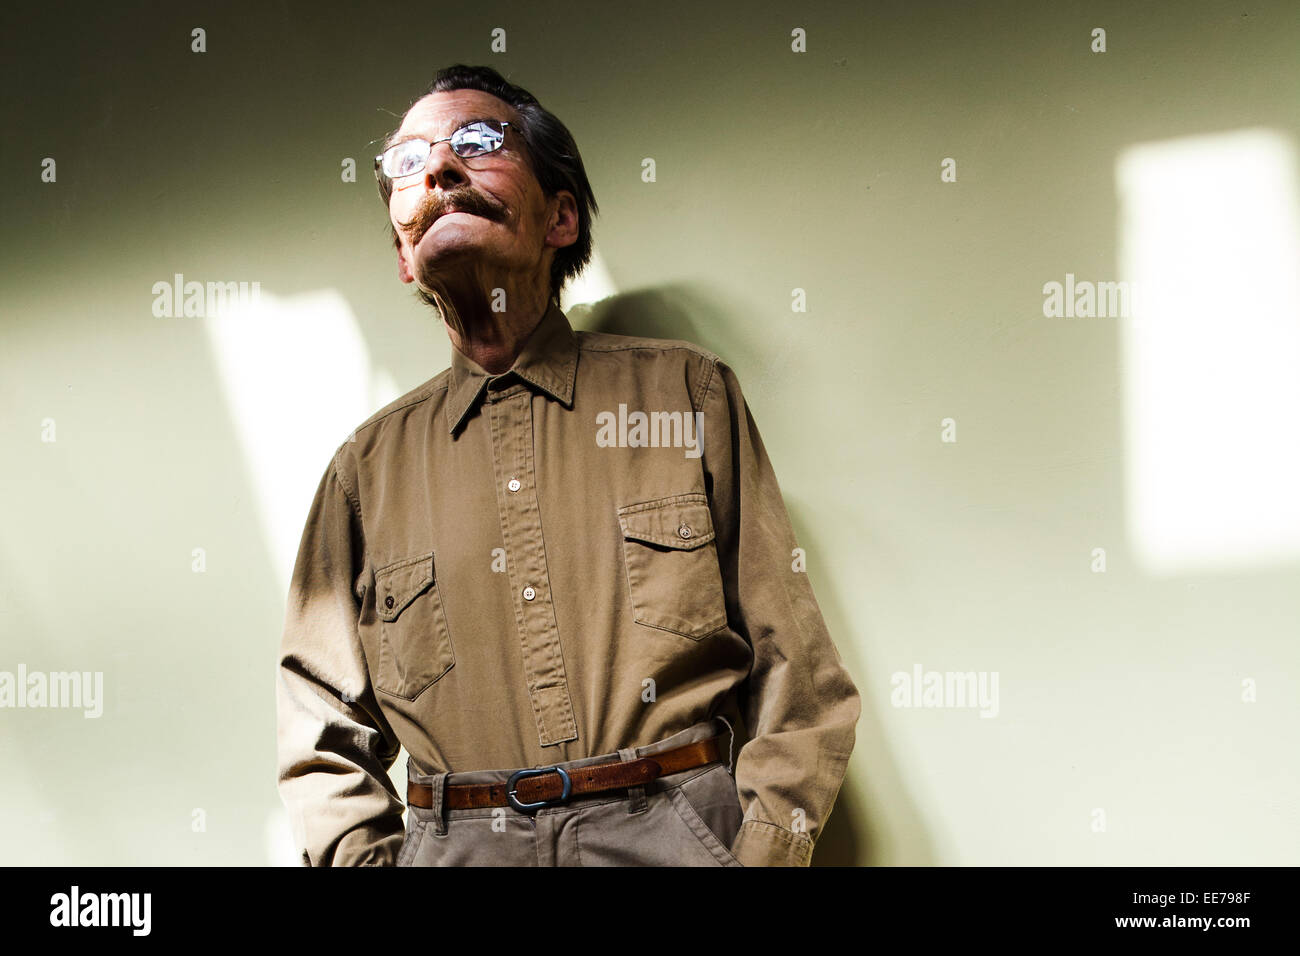 Man in his 60s with moustache wearing khaki shirt and trousers. - Stock Image